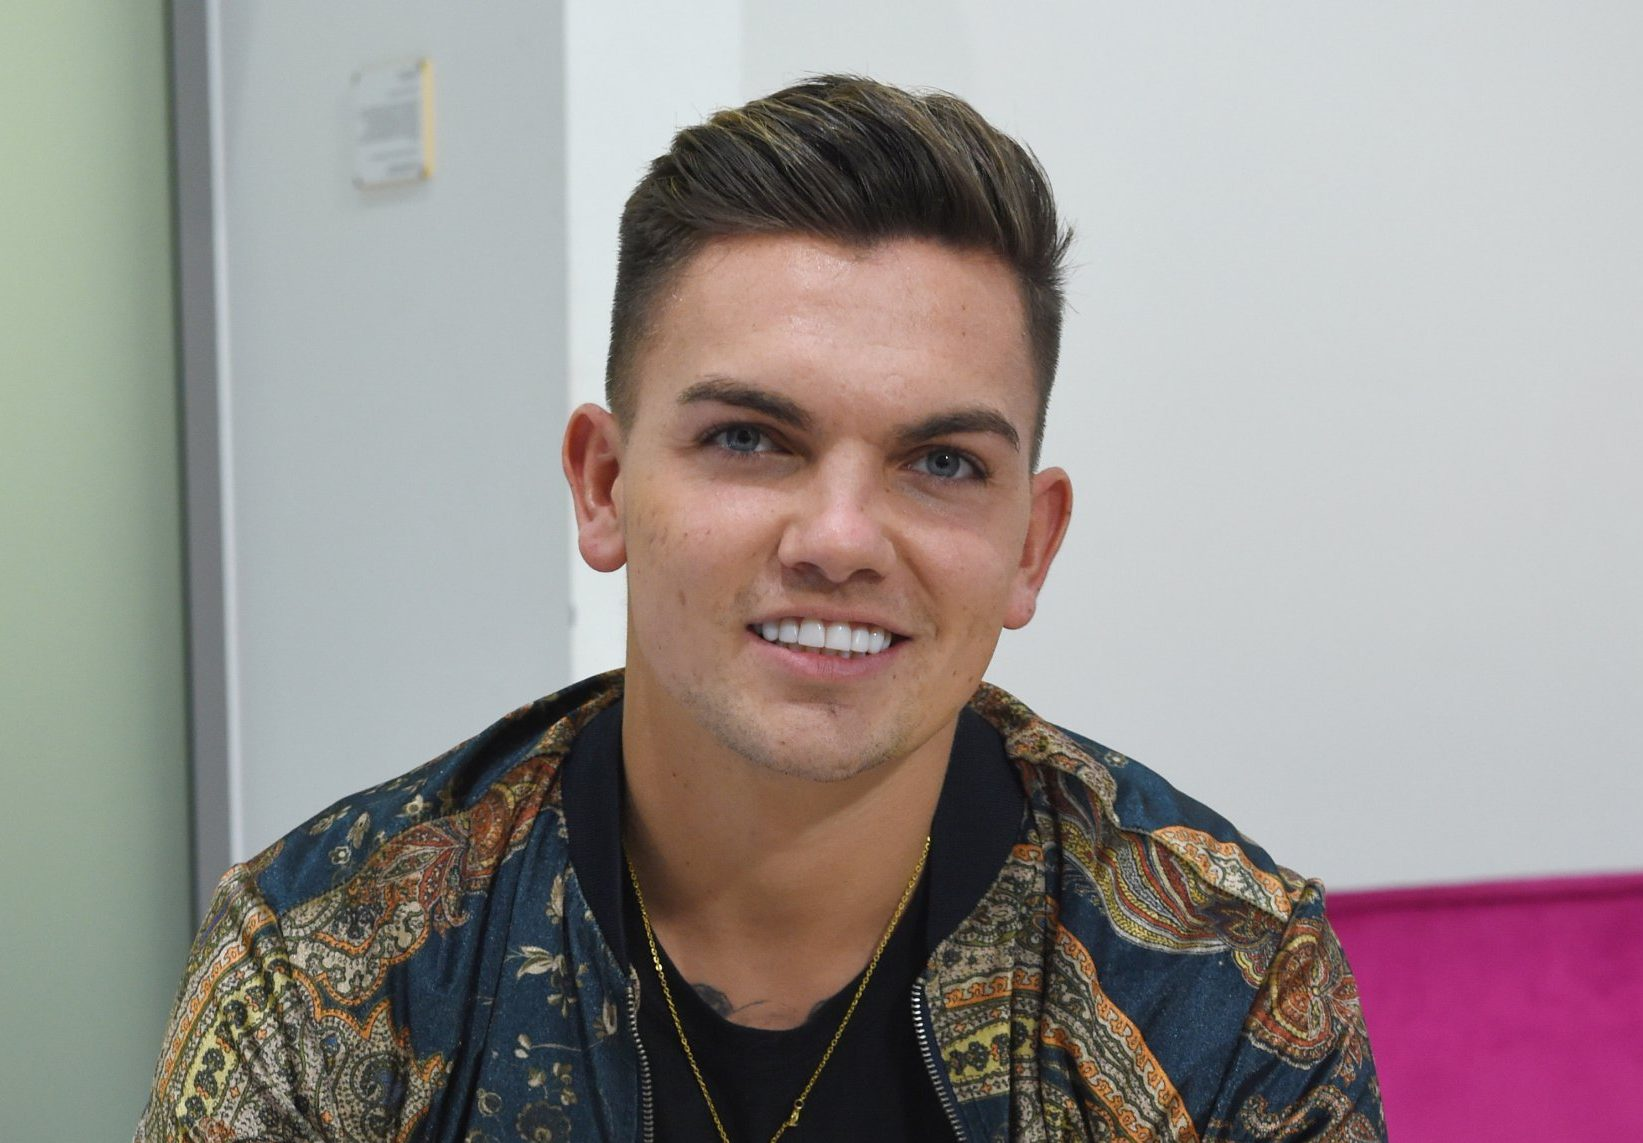 Sam Gowland reveals regret at cancelling dinner with Mike Thalassitis days before tragic death